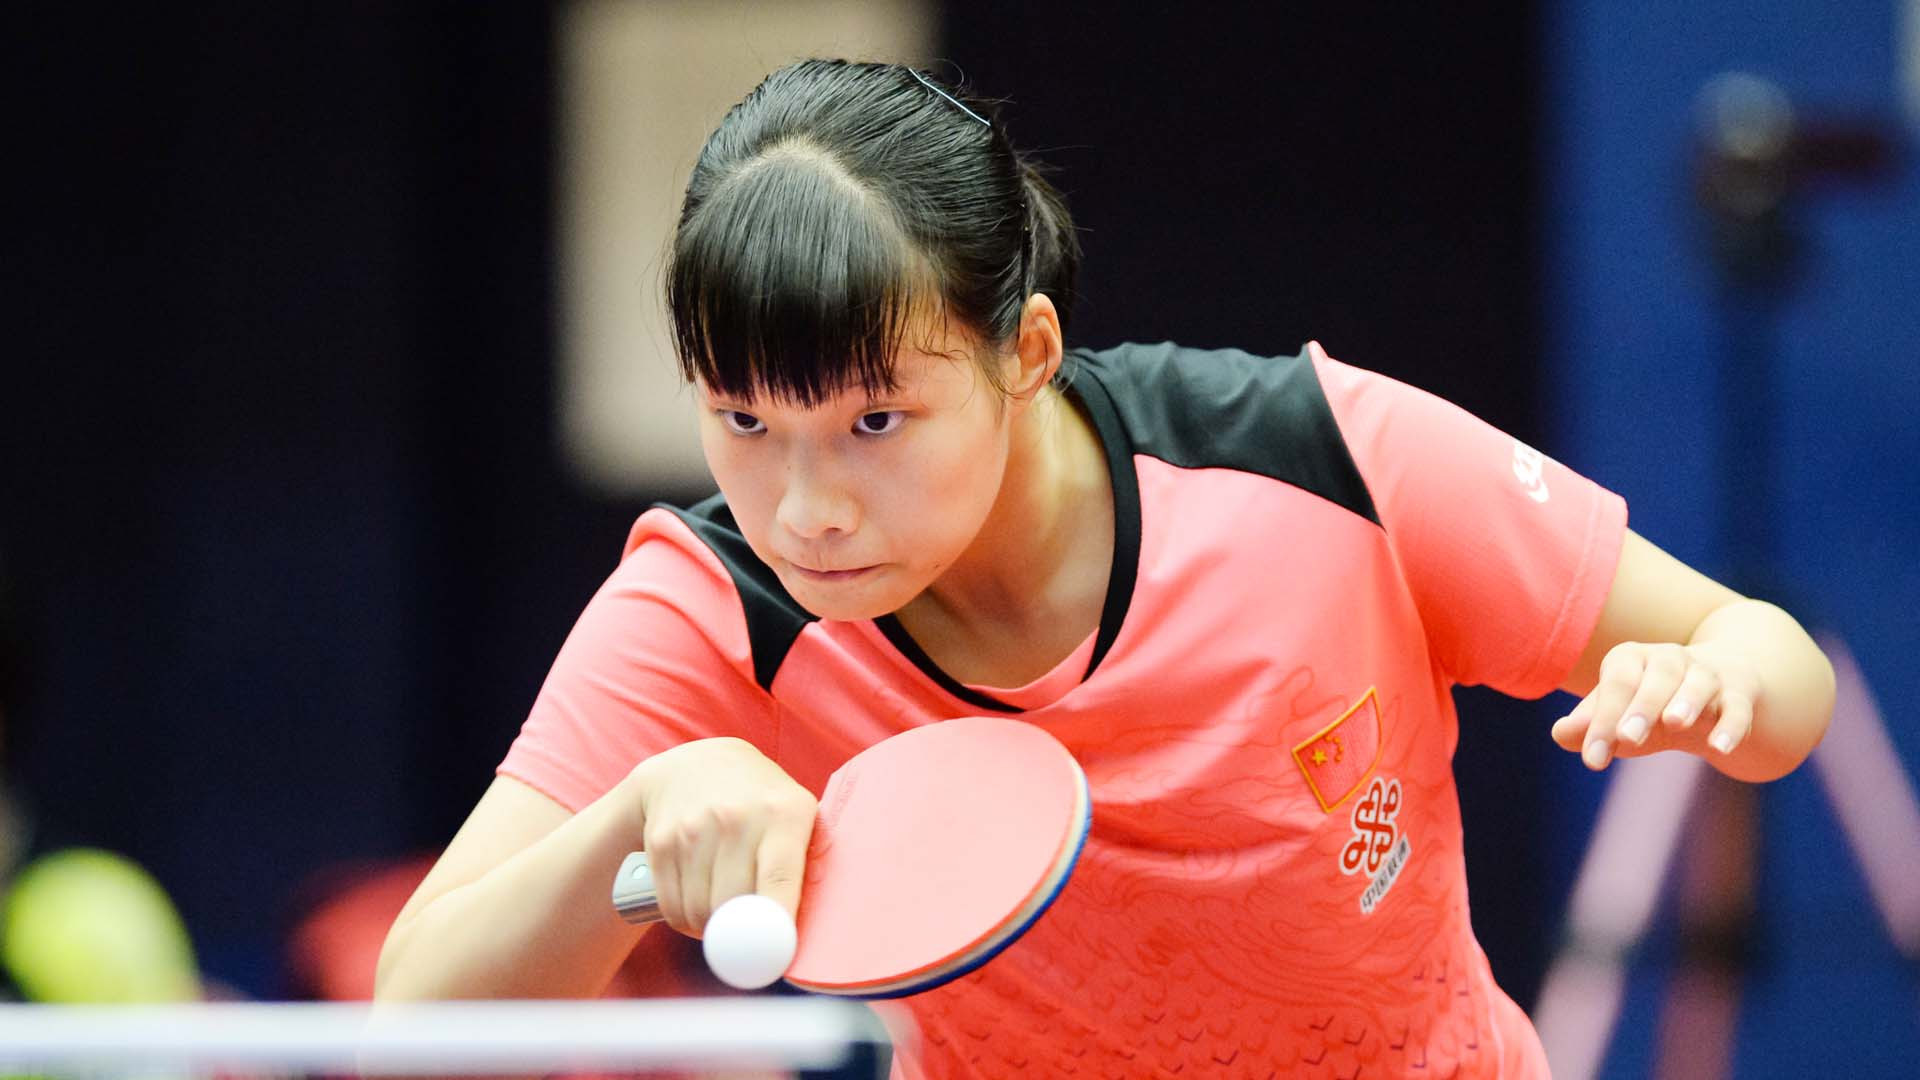 Top seeds in girls' singles event progress to semi-final at ITTF World Junior Championships